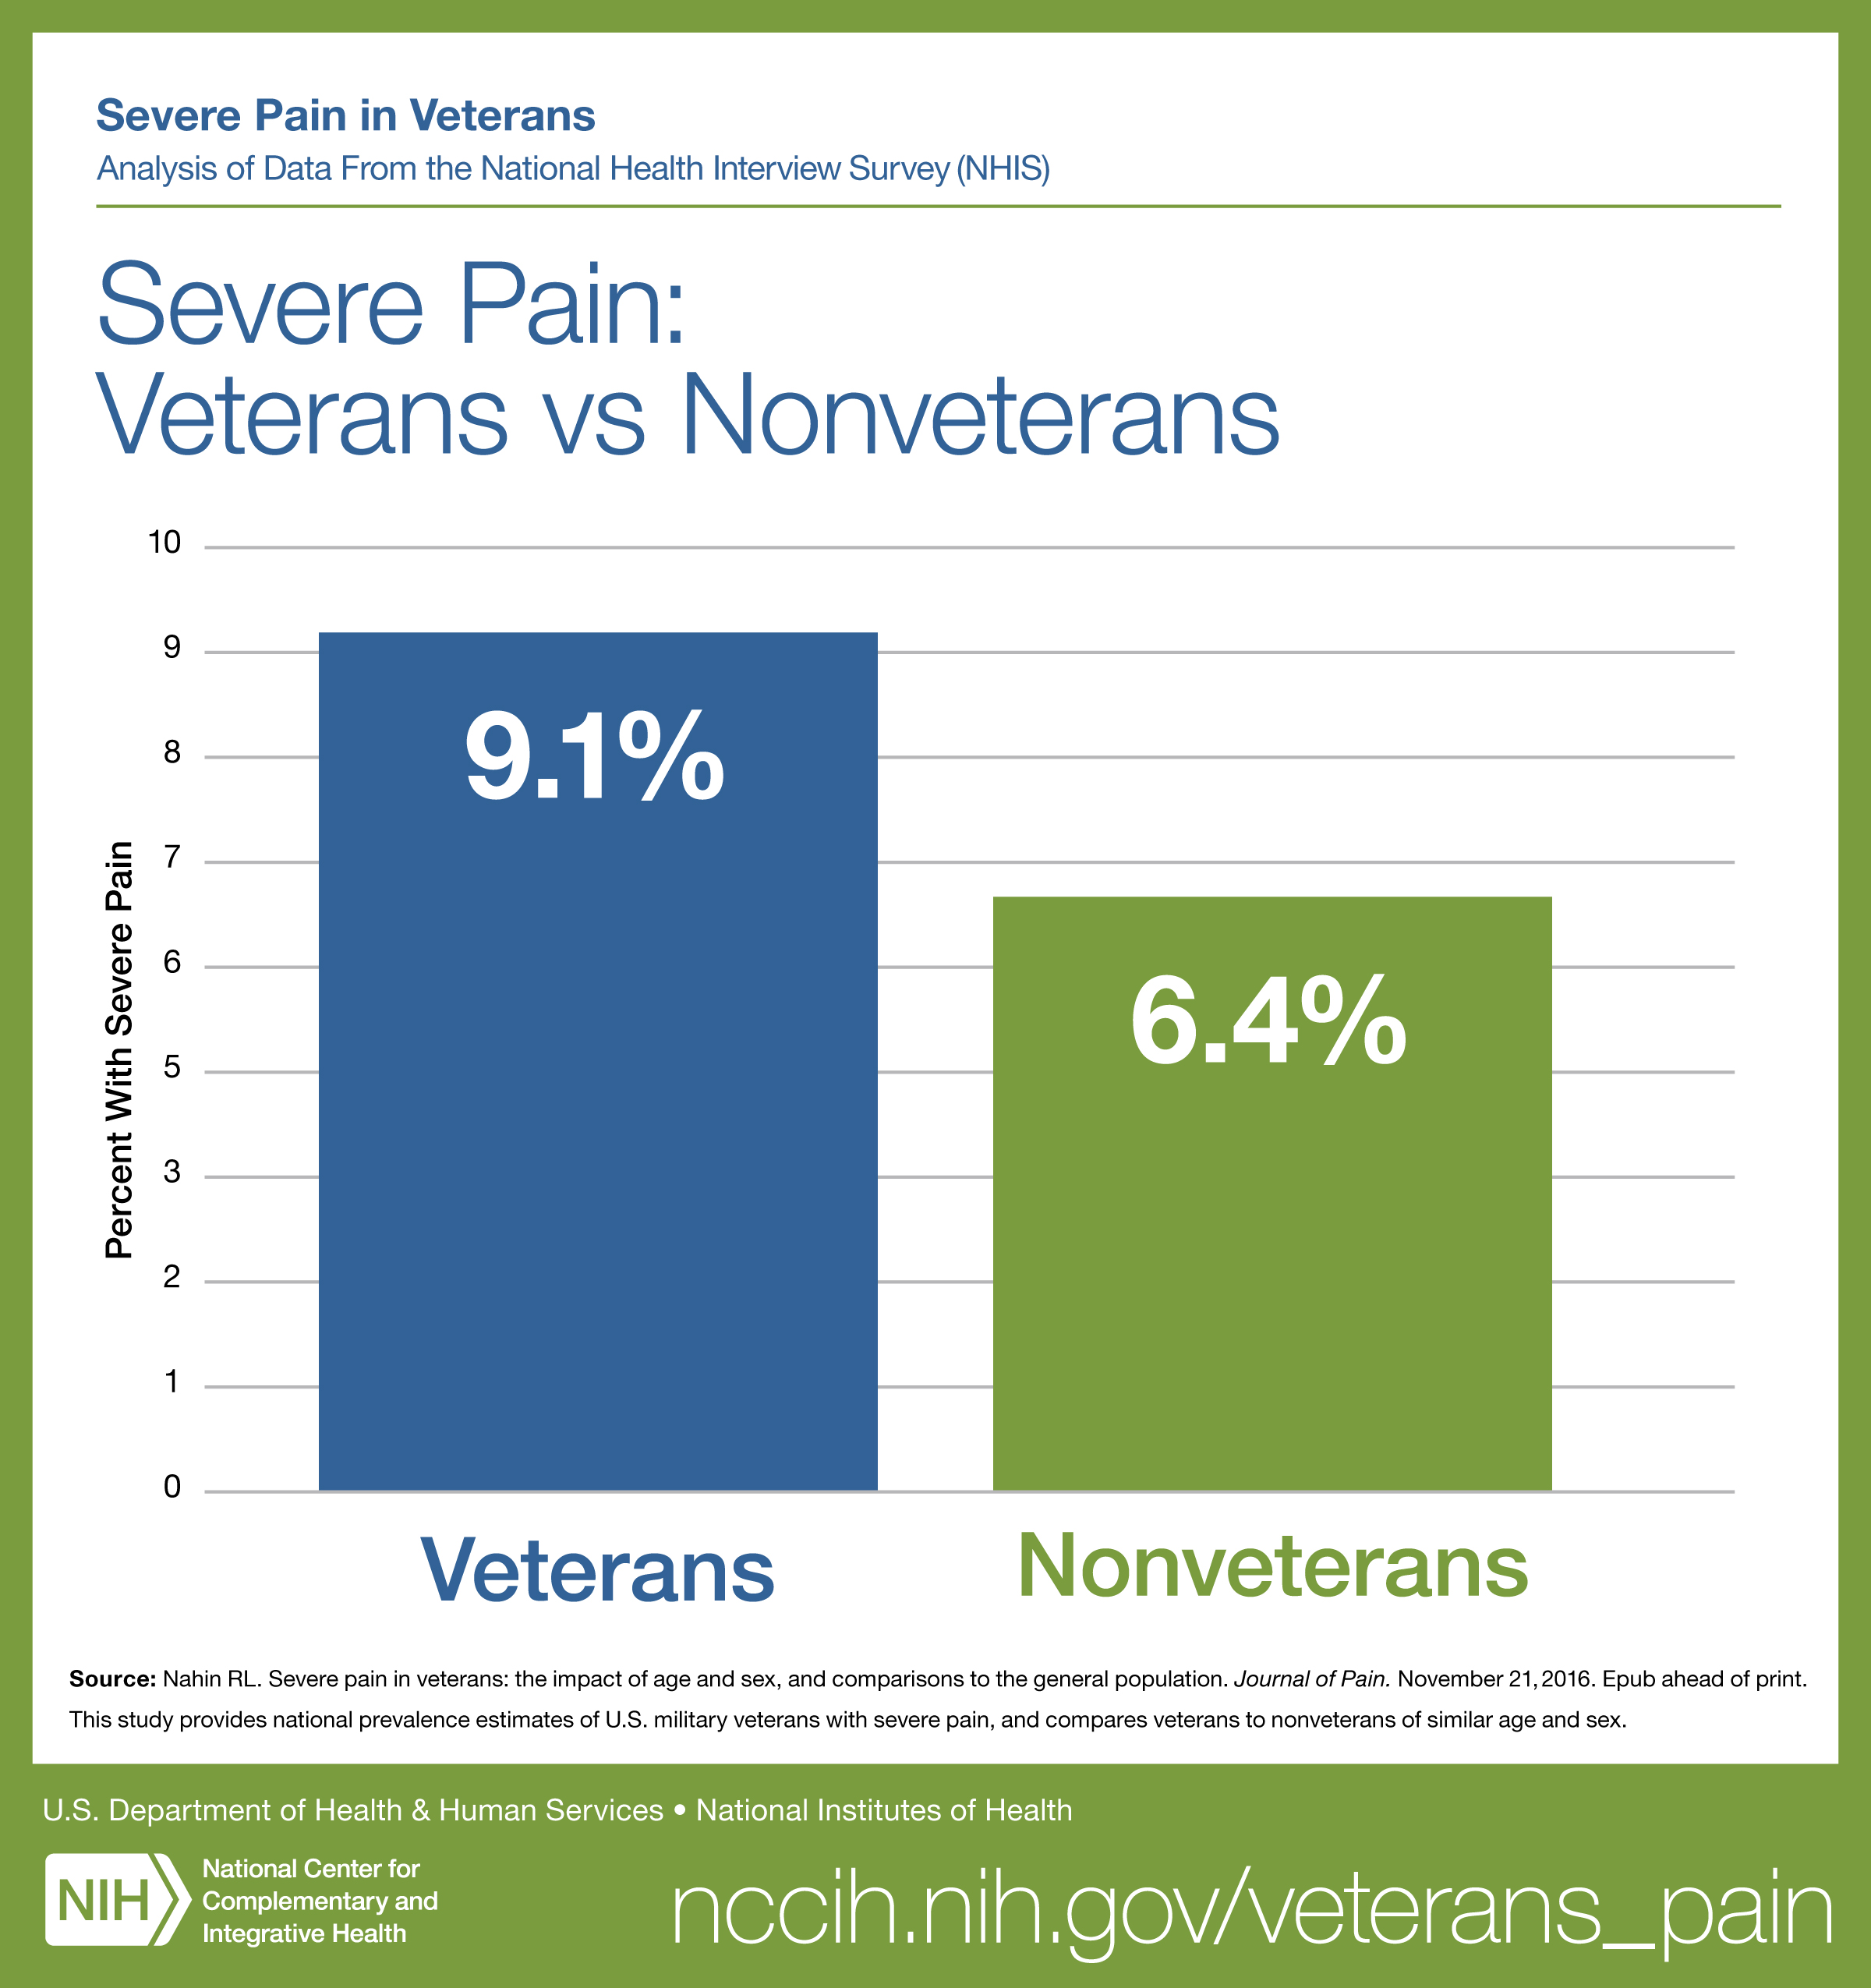 Graph titled Severe Pain: Veterans vs Nonveterans.  See Text Version link below